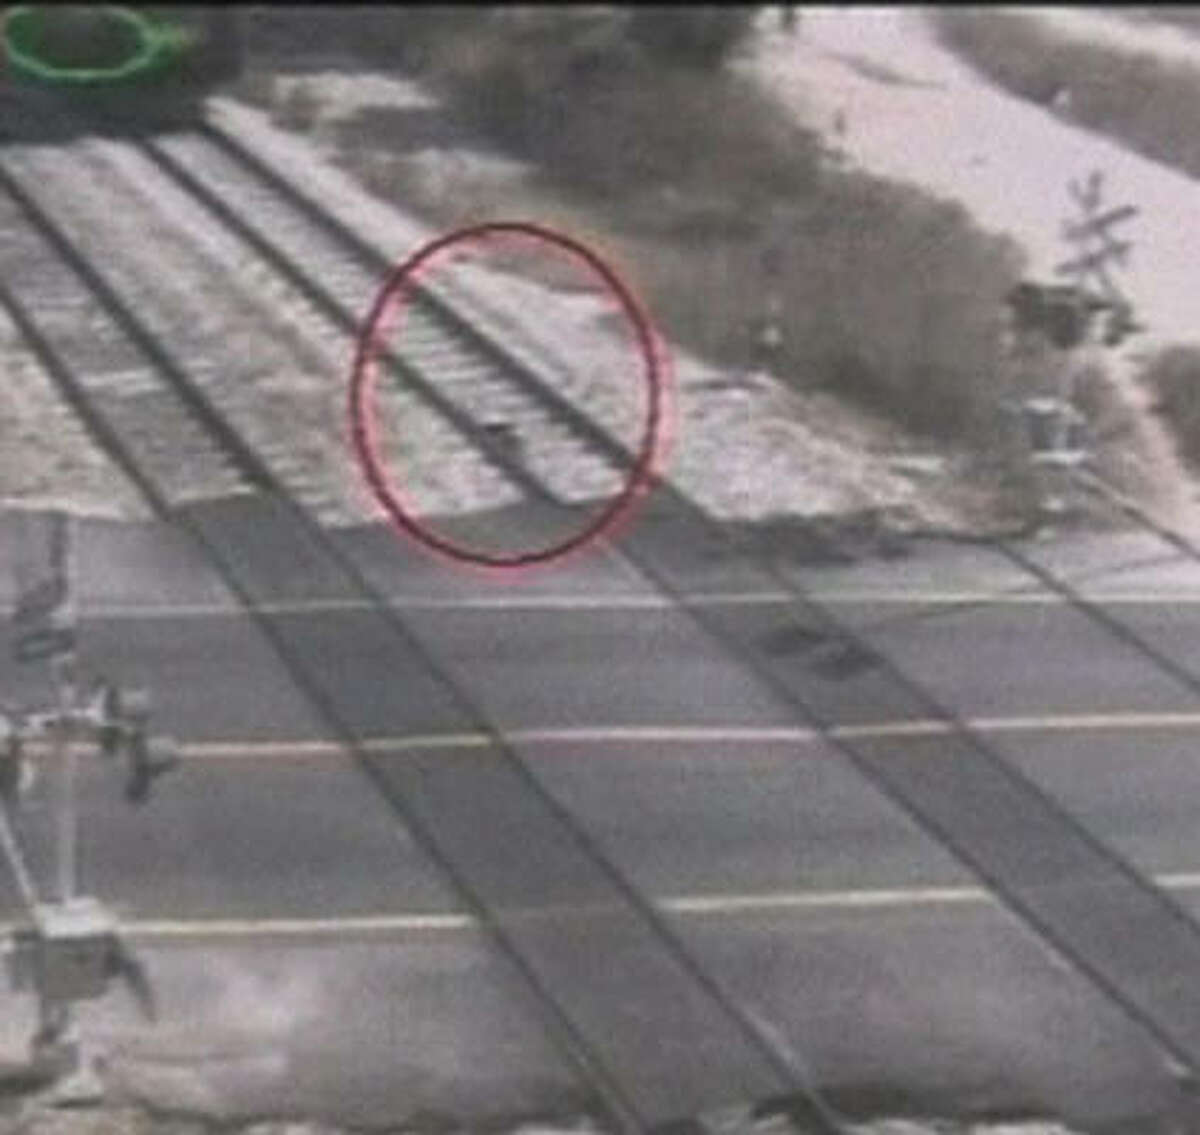 The woman puts herself on the tracks, and at the top the train appears to come into the frame. Police spokesman Micky Rosenfeld speculated that the woman was attempting suicide or was mentally unbalanced.